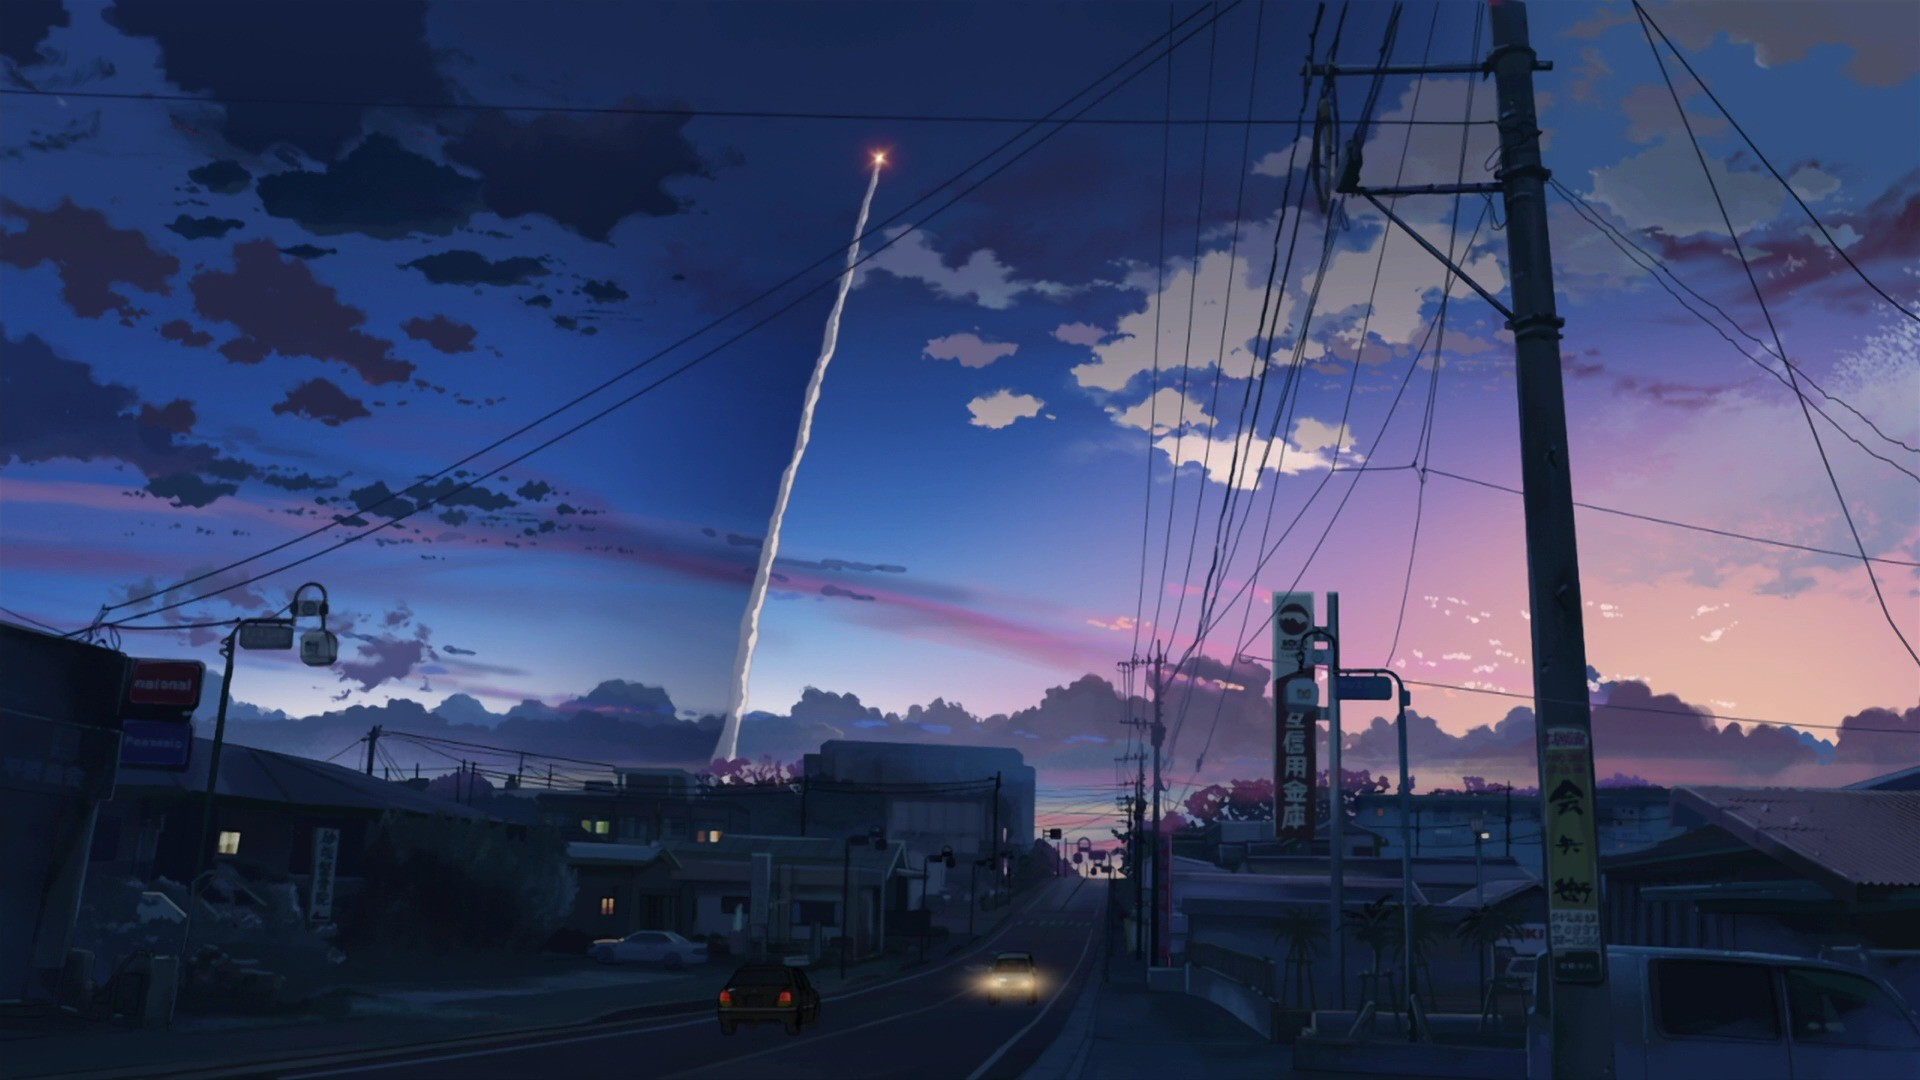 Anime Scenery Wallpaper 1 Download Free Awesome Wallpapers For